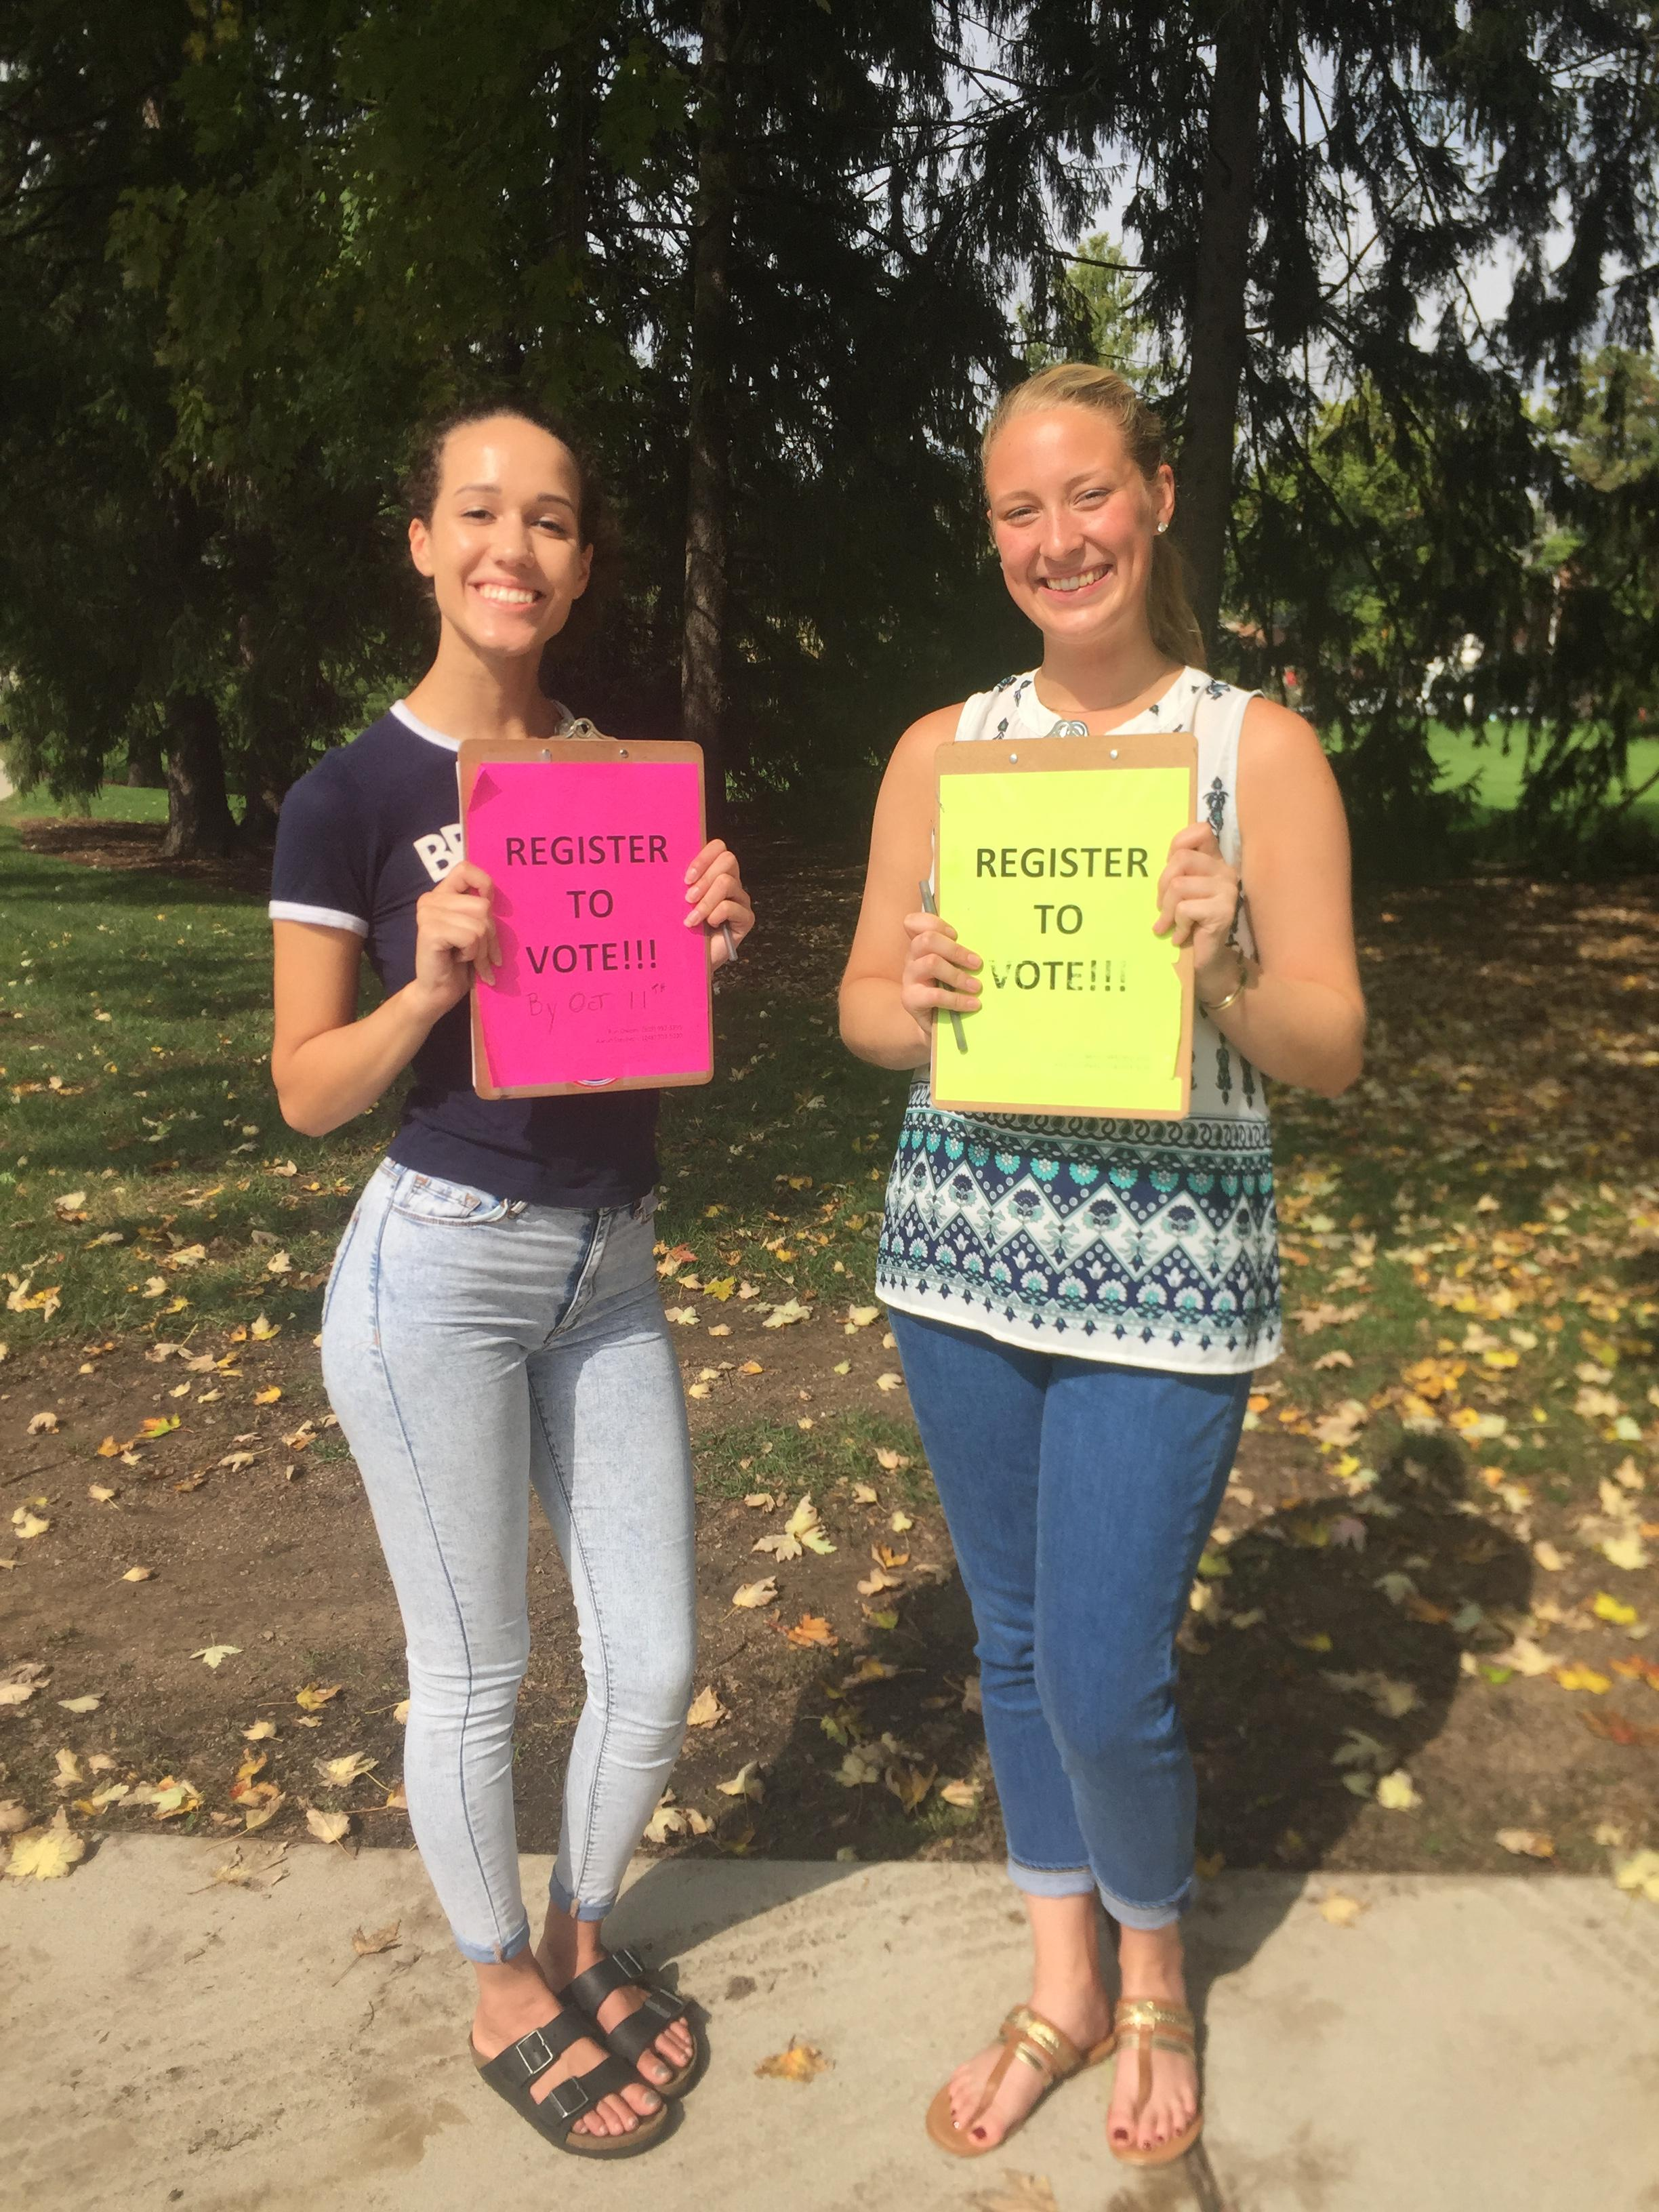 College students encouraging their peers to register to vote